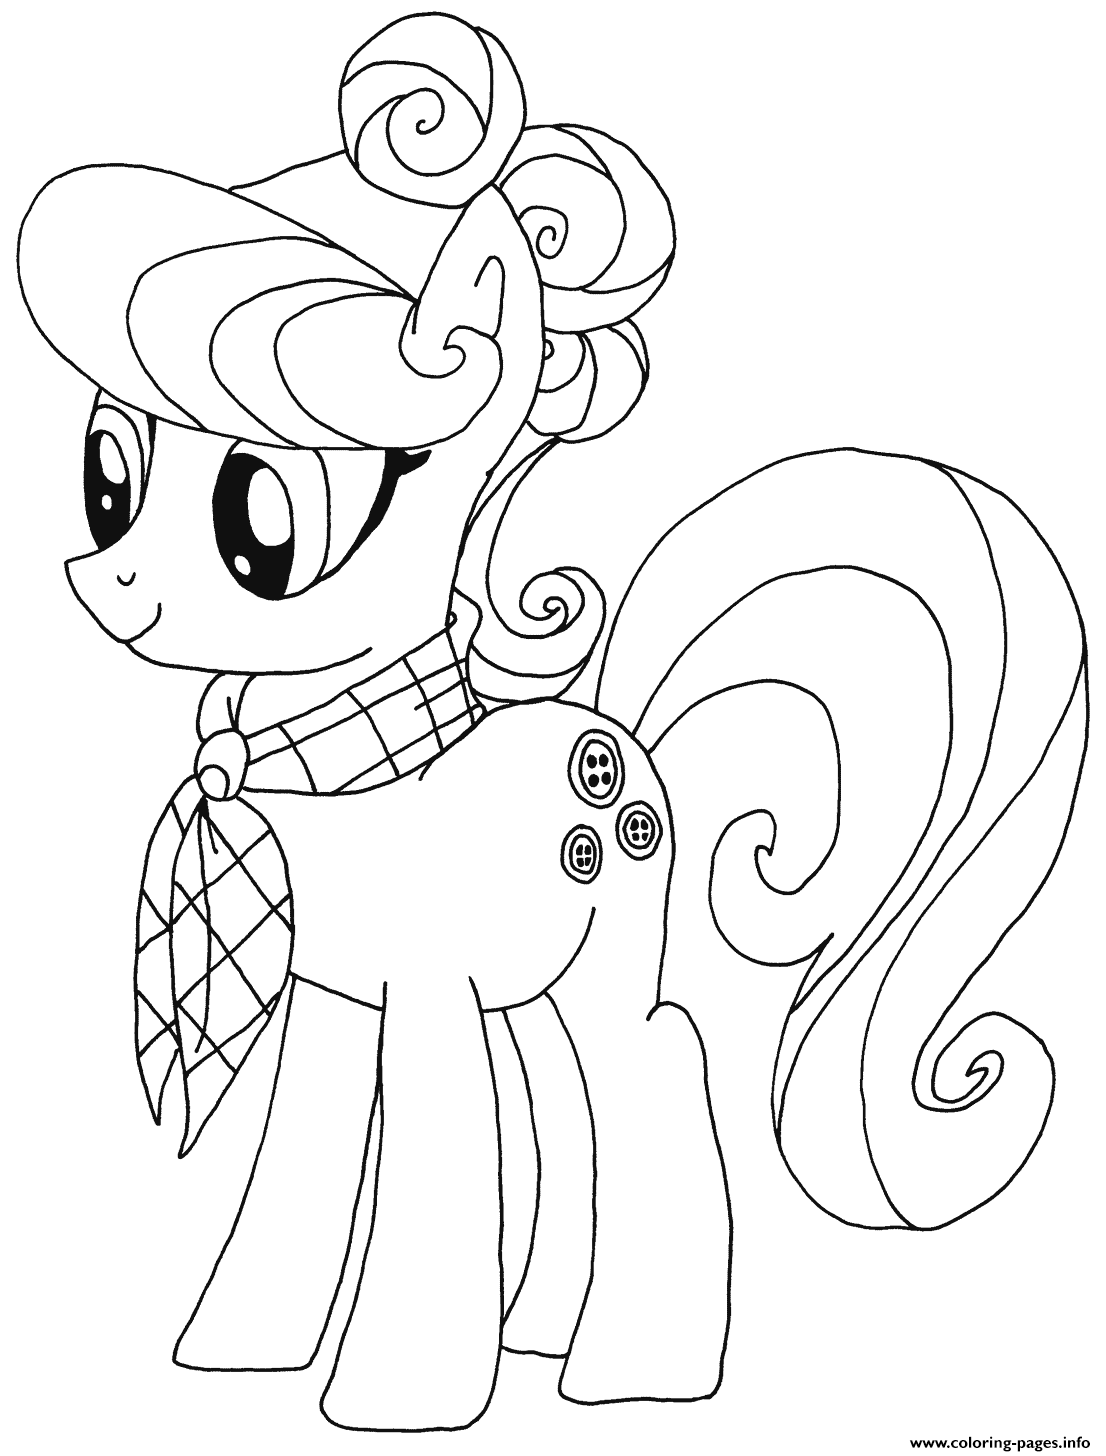 Mlp coloring pages dj pon 3 - Print Suri Polomare My Little Pony Coloring Pages